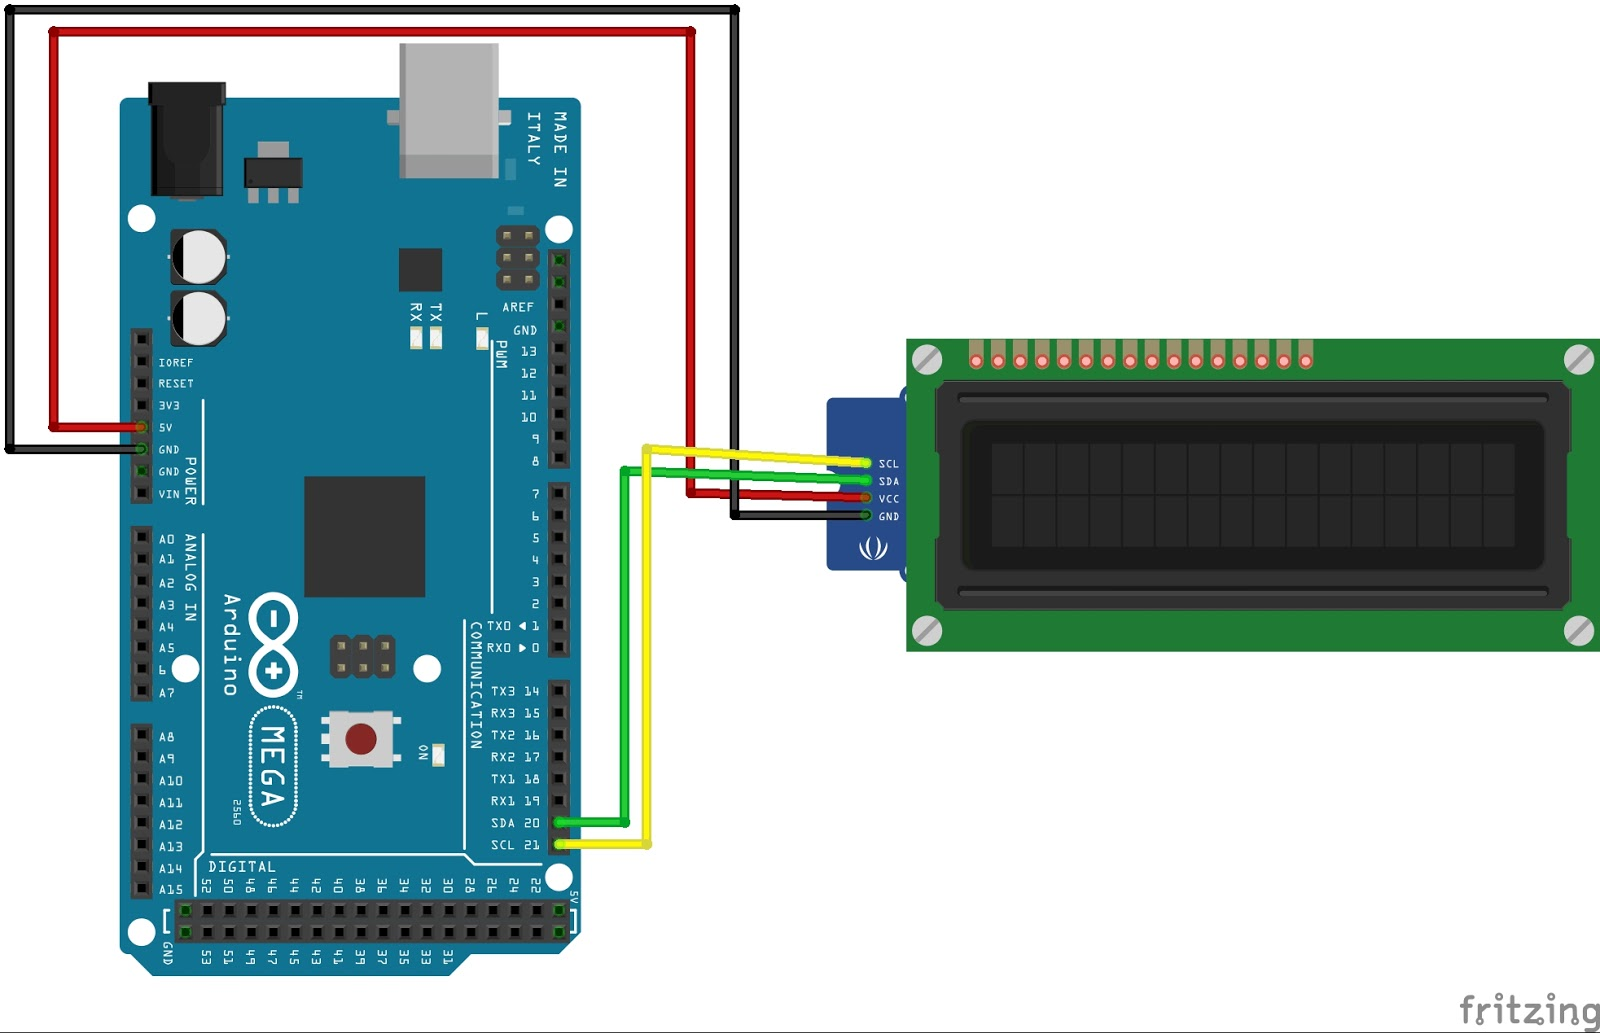 How to connect an I2C LCD Display to an Arduino MEGA 2560